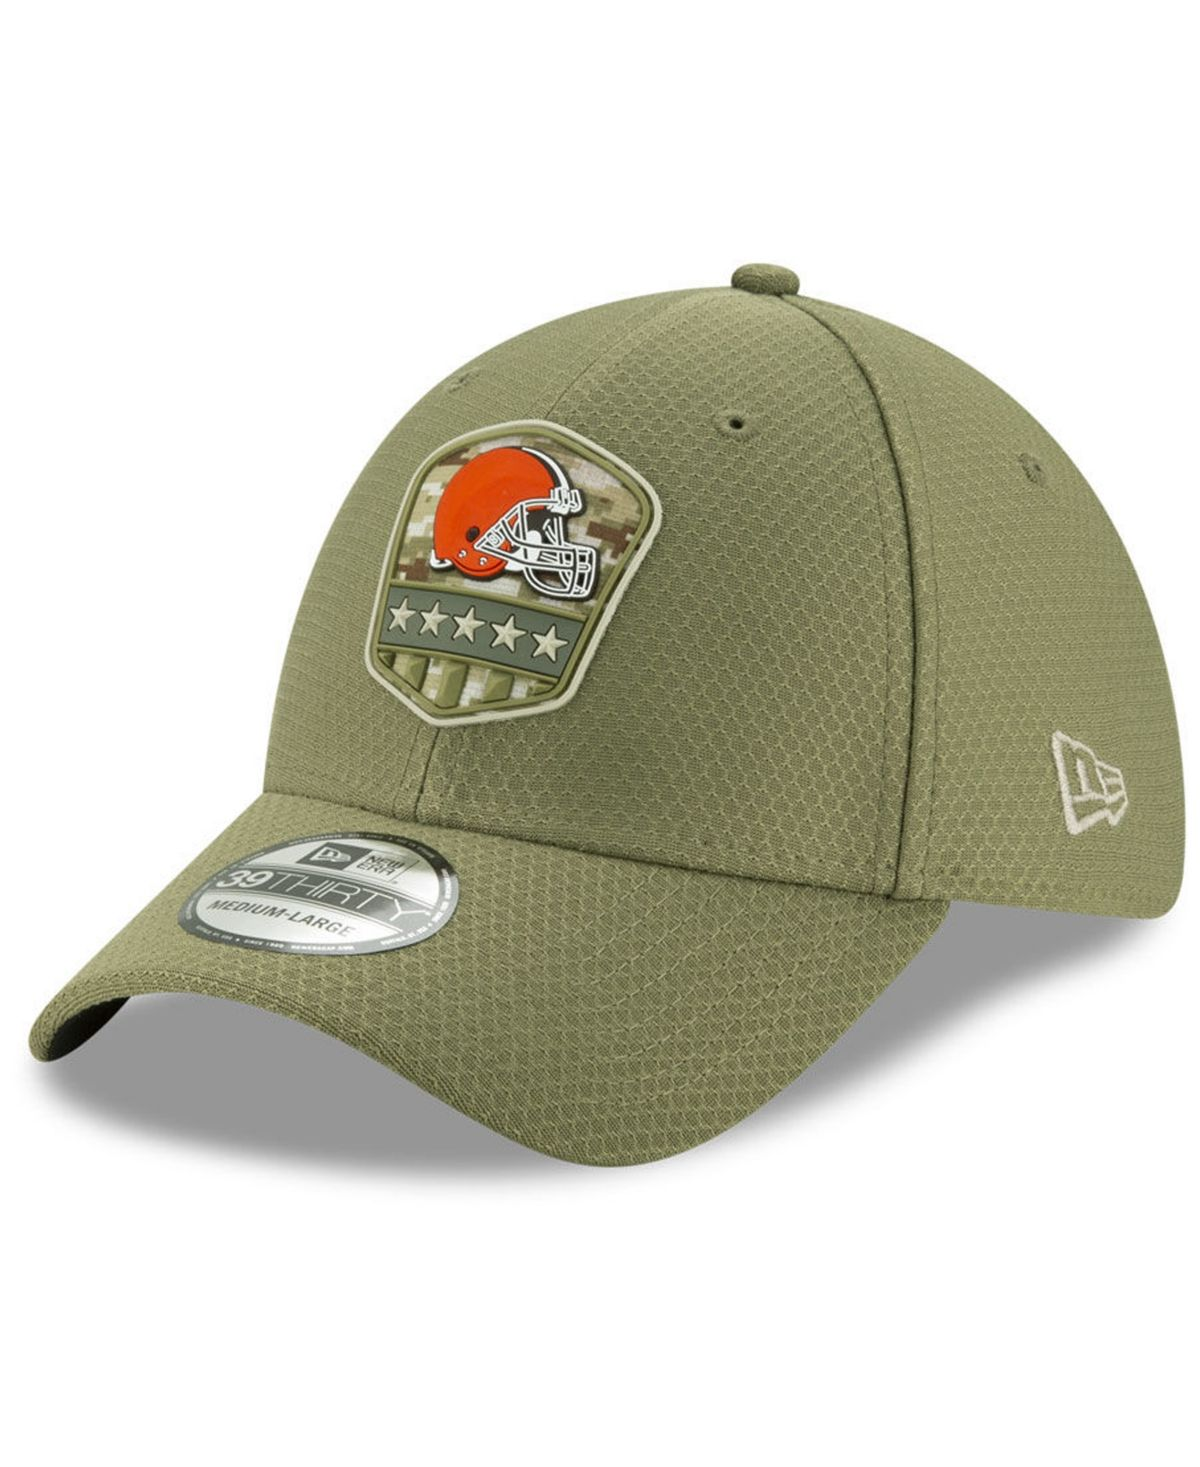 New Era Cleveland Browns On Field Salute To Service 39thirty Cap Reviews Sports Fan Shop By Lids Men Macy S Salute To Service Cleveland Browns Nfl Cleveland Browns